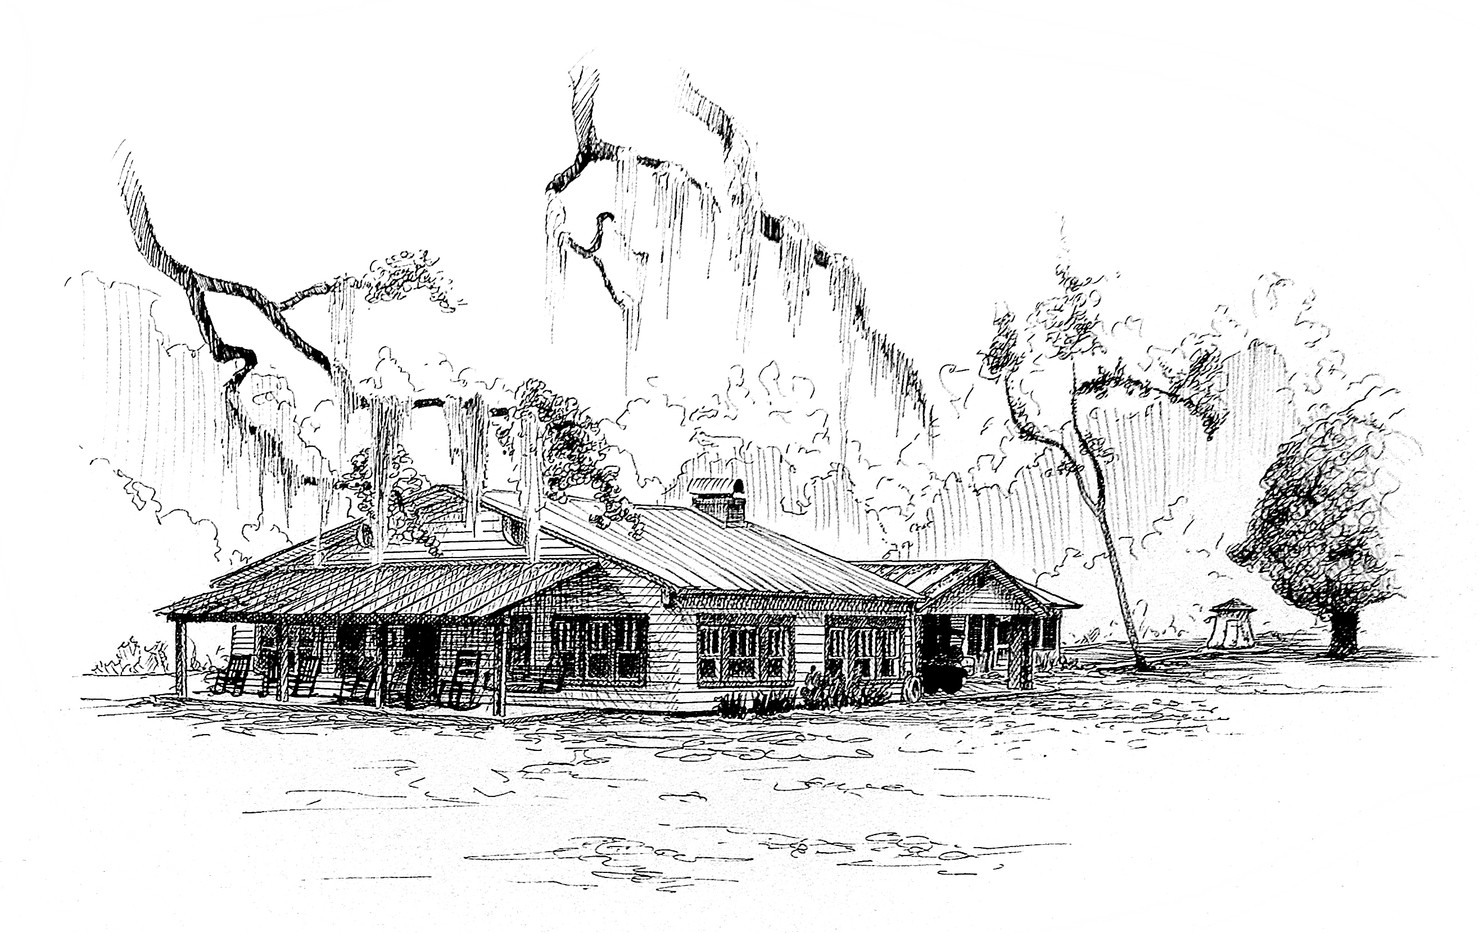 original pen and ink of the Powell farmhouse by Bill FitzGibbon